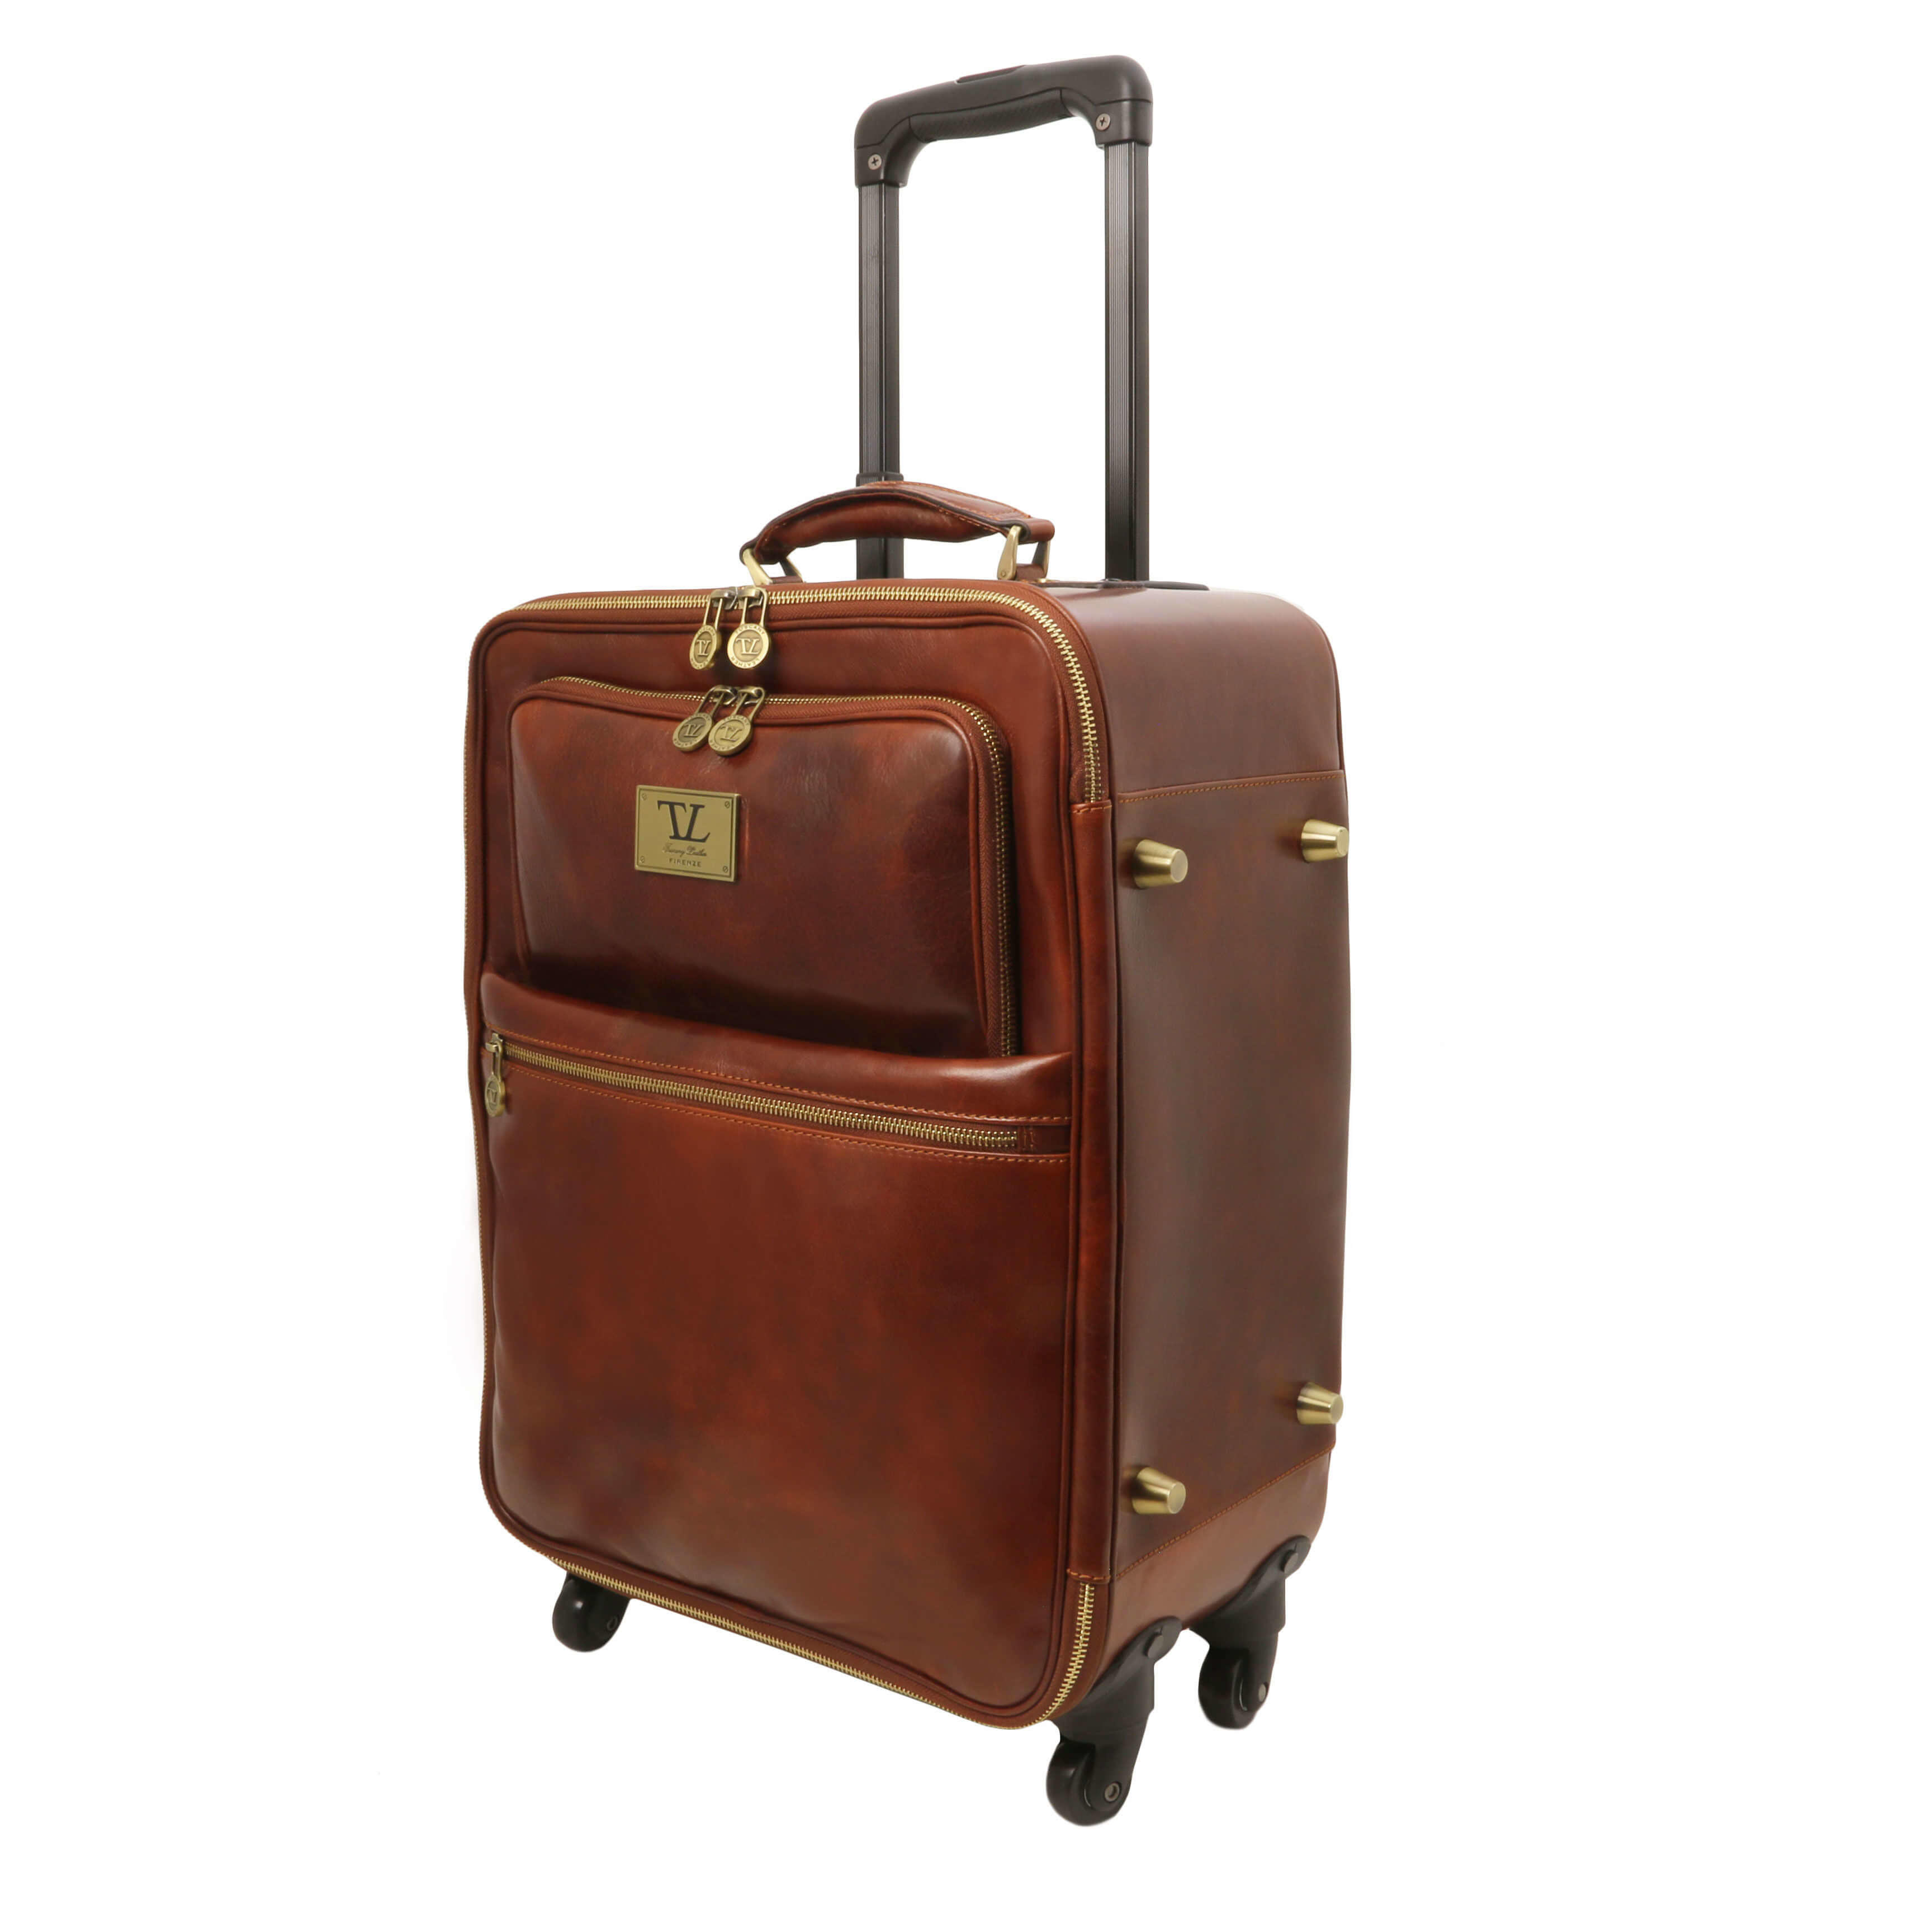 TL141390 Voyager 4 Wheeled Travel-Luggage Bag-Case in Polished C